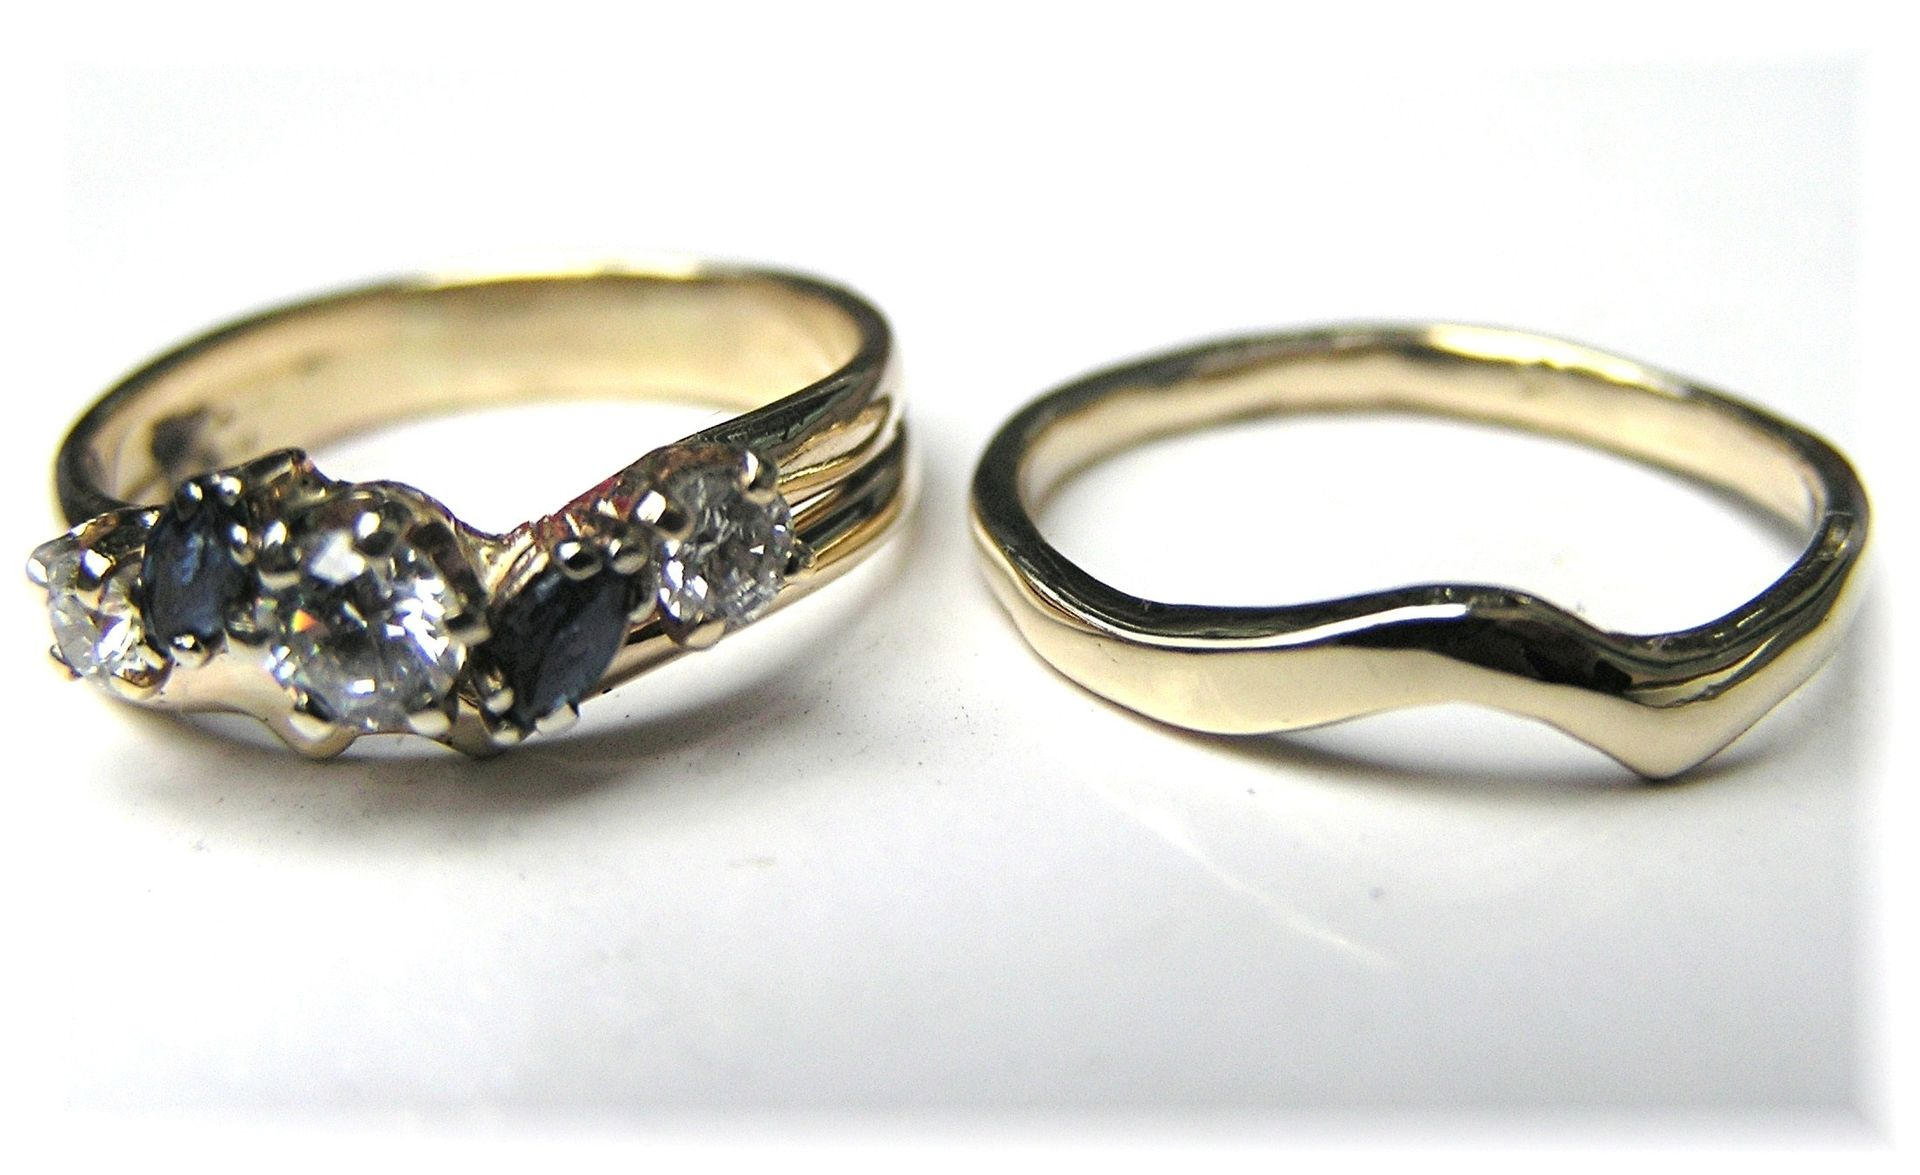 engagement shakti buy man and canadamark diamond an should why rose i ethical made fairtrade ellenwood gold rings ring